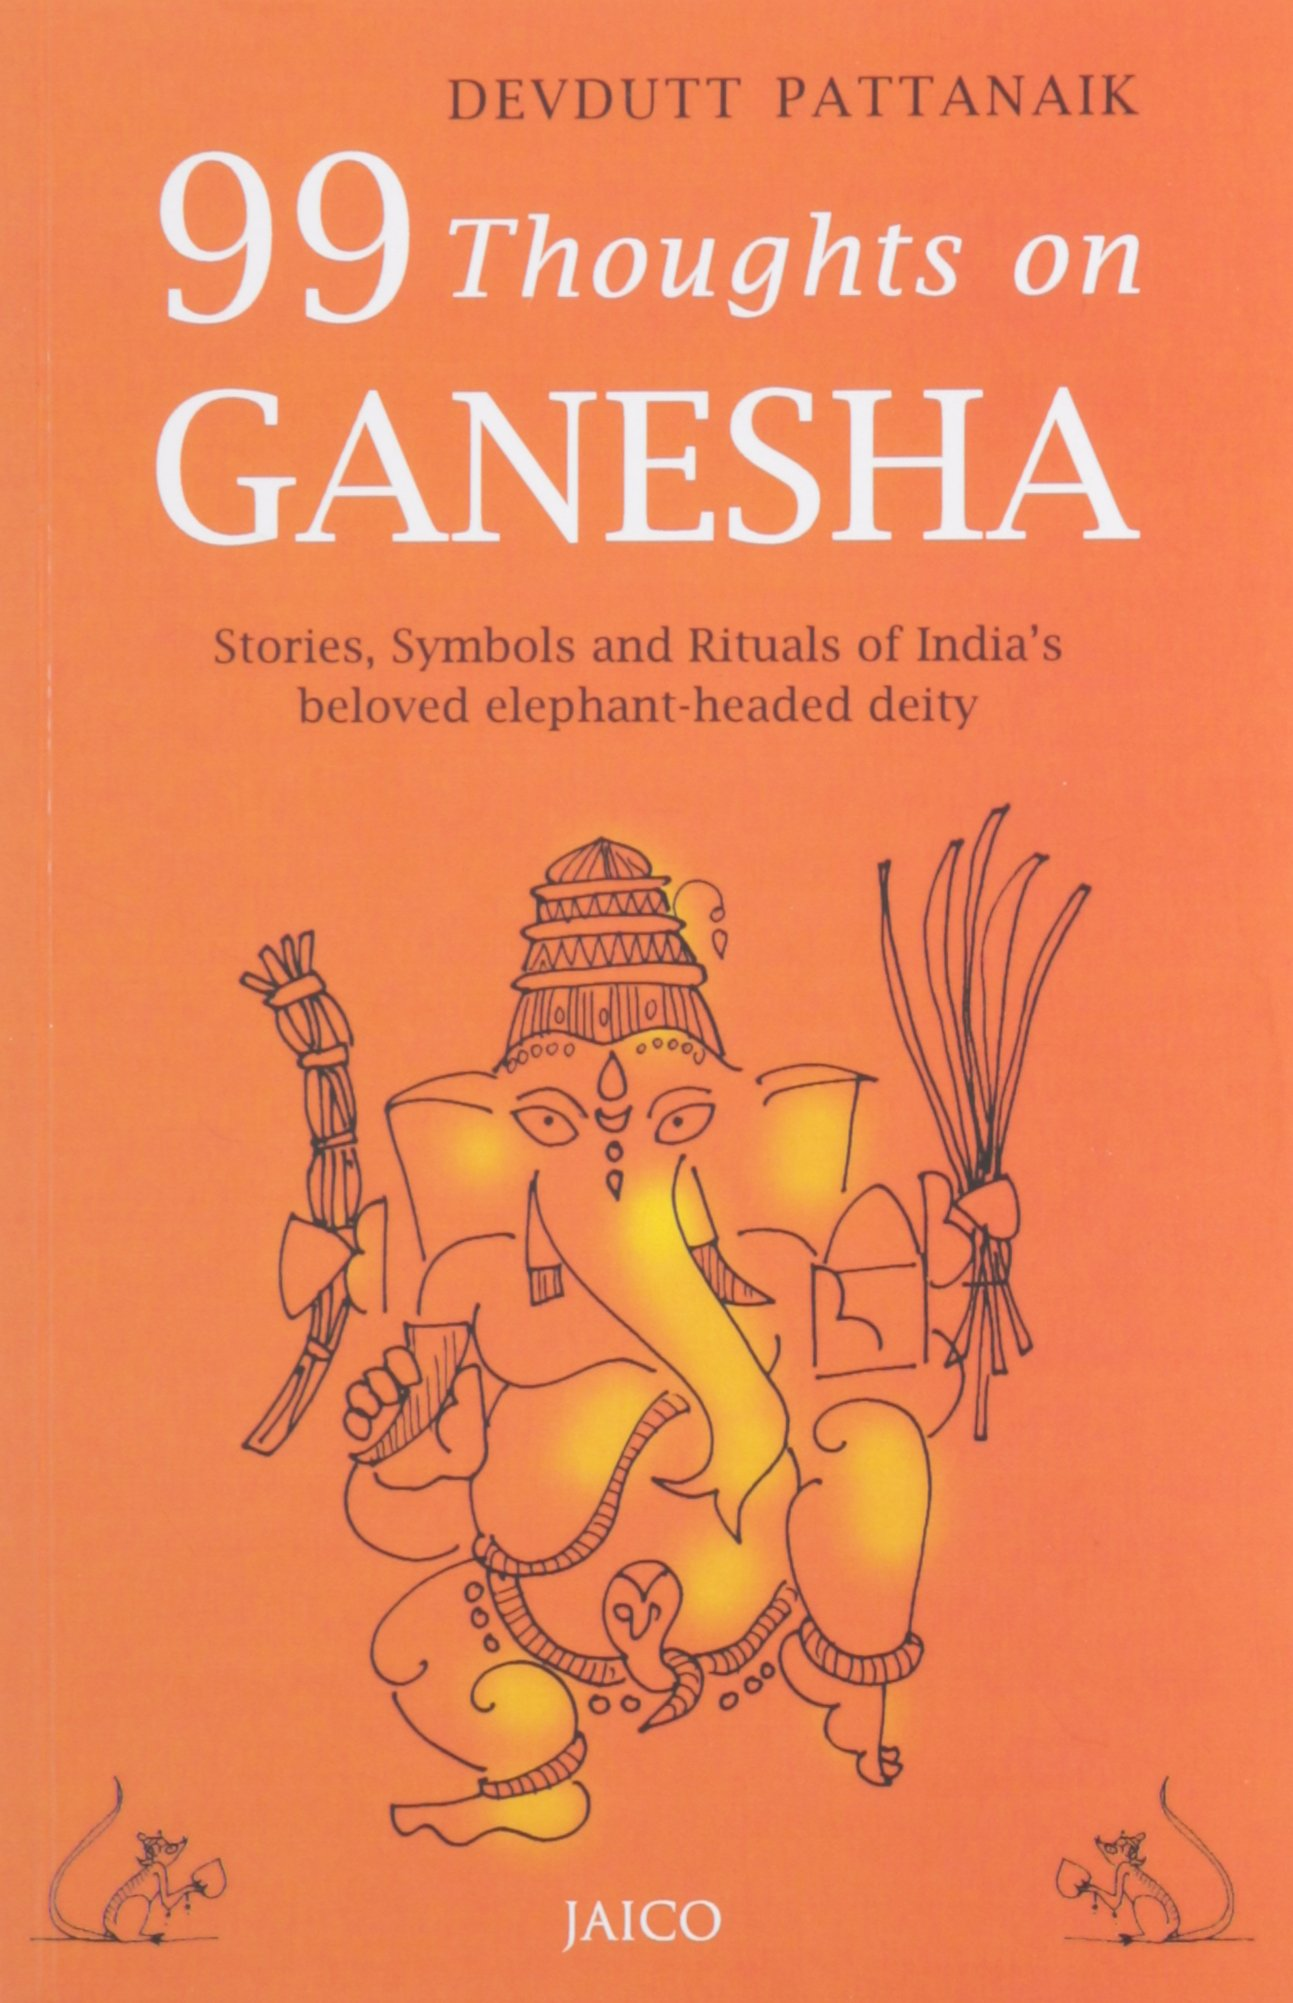 99 Thoughts On Ganesha: Stories,Symbols and Rituals of India's beloved elephant-headed deity free download